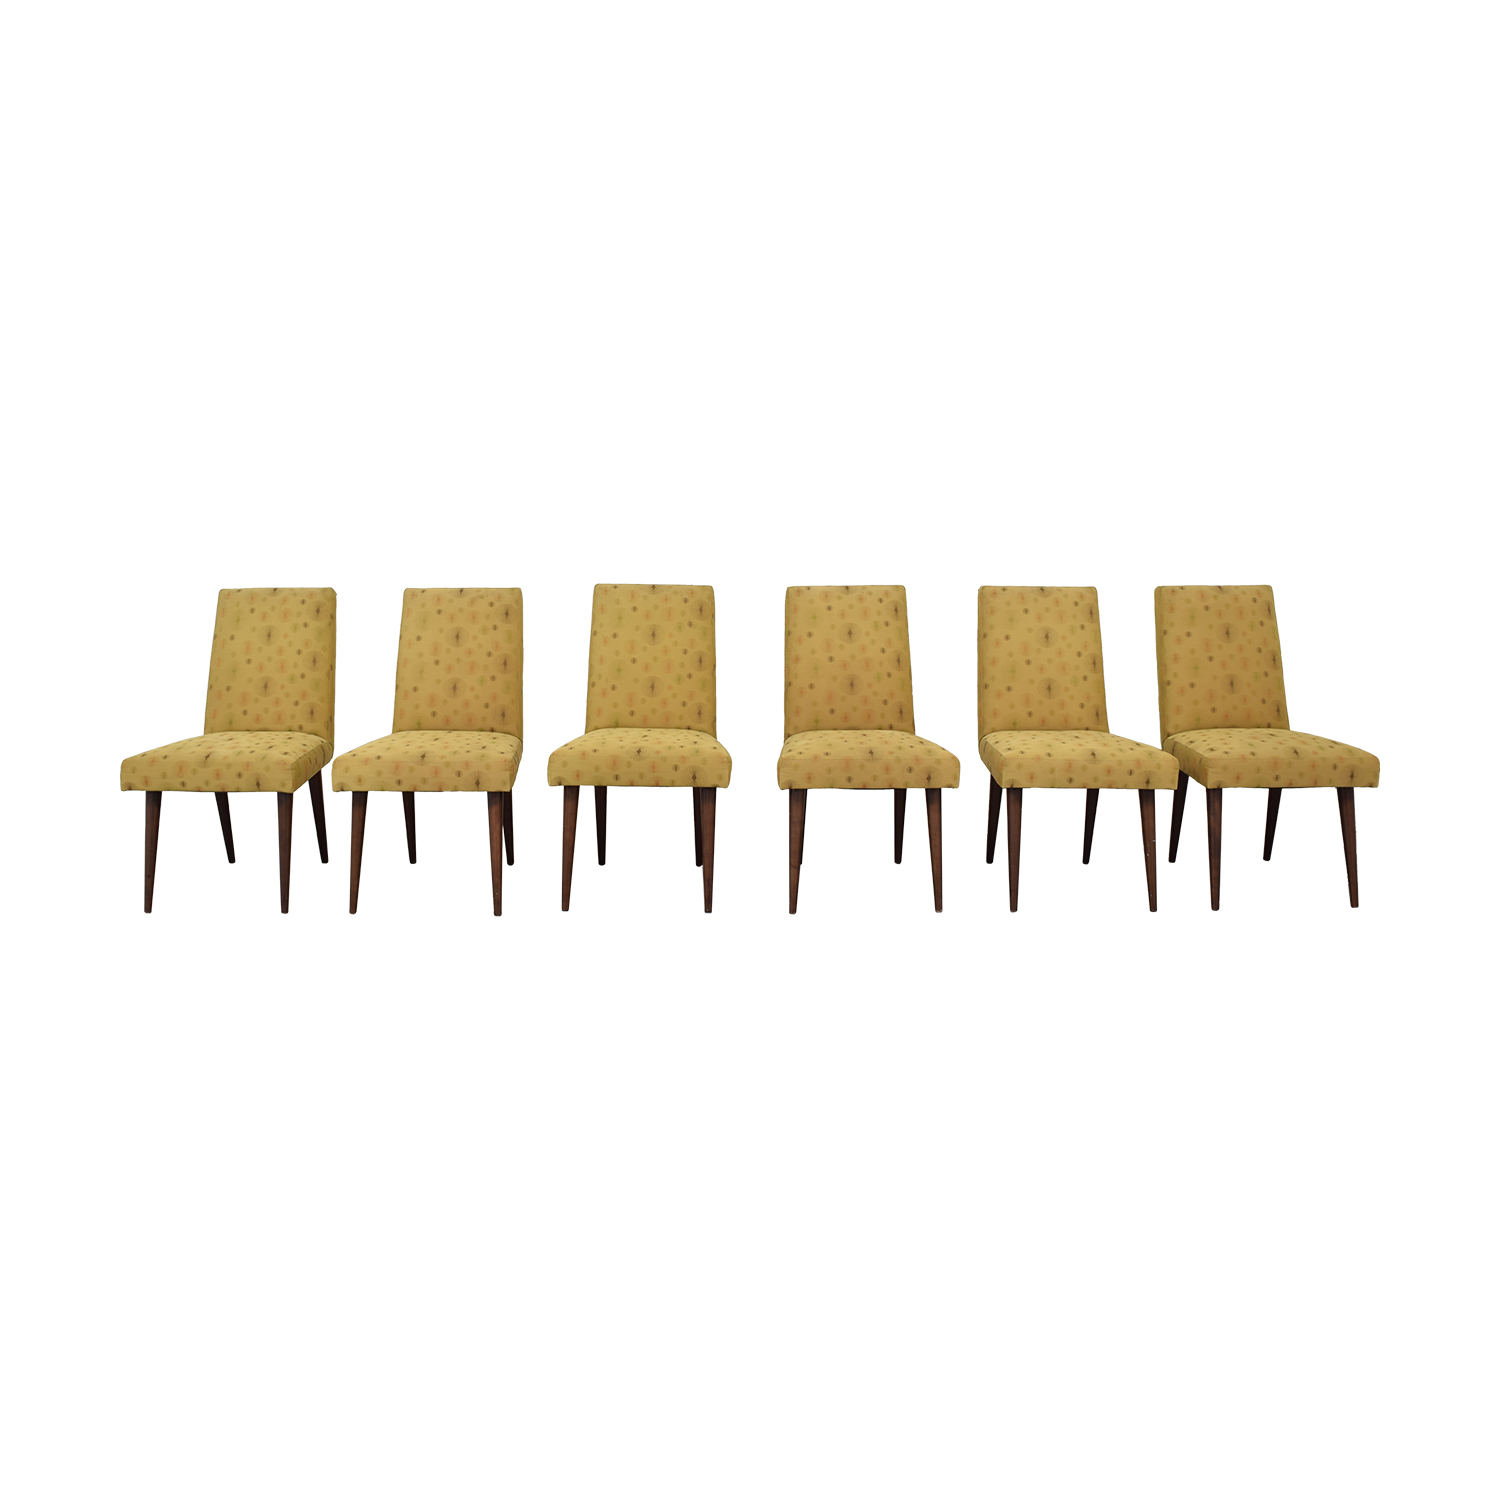 Room & Board Room & Board Multi-Colored Dining Chairs dimensions